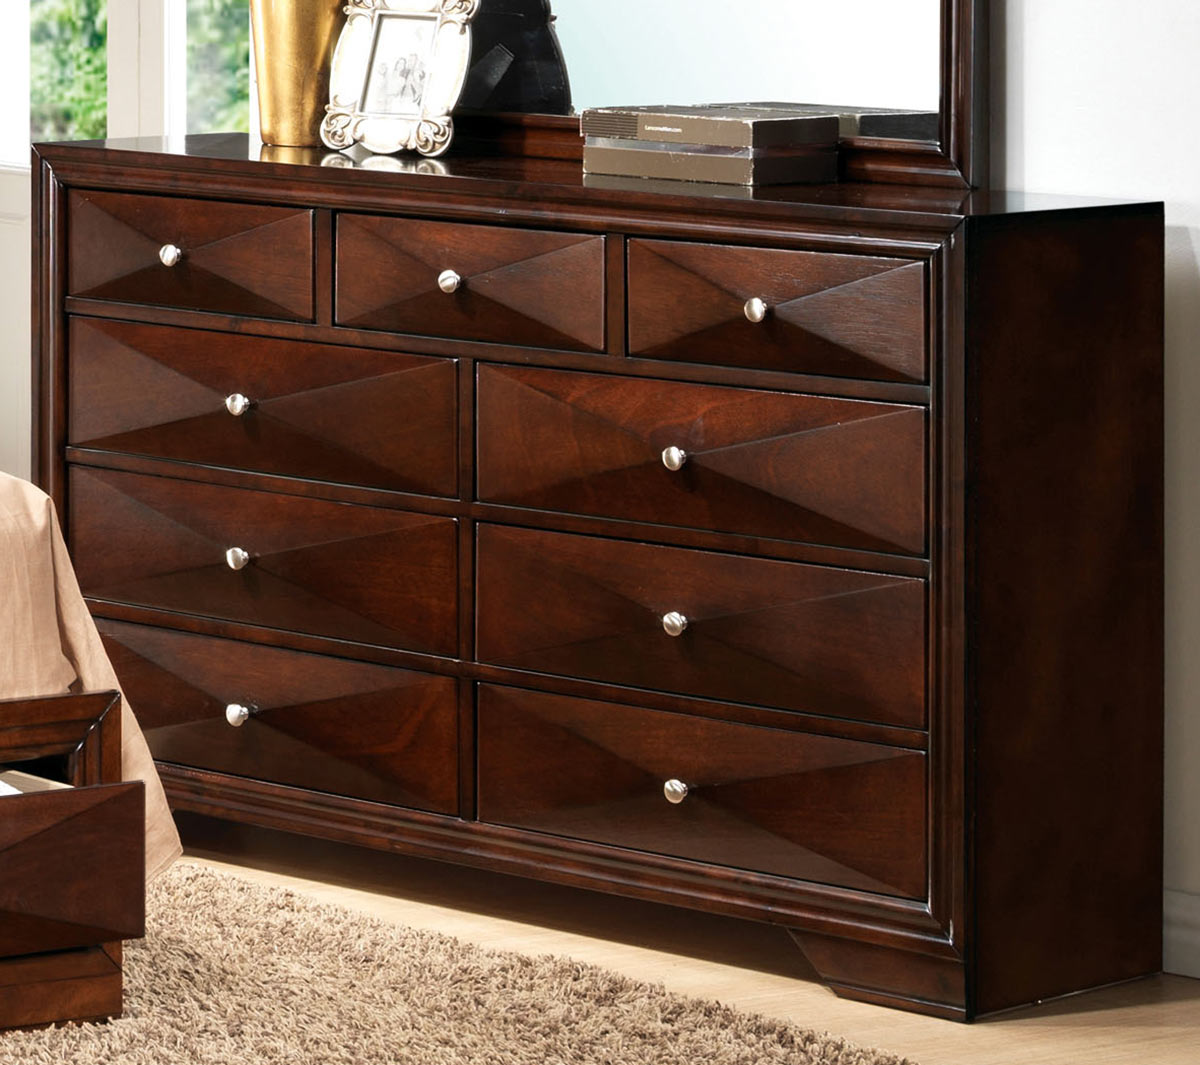 Acme Windsor Dresser - Merlot